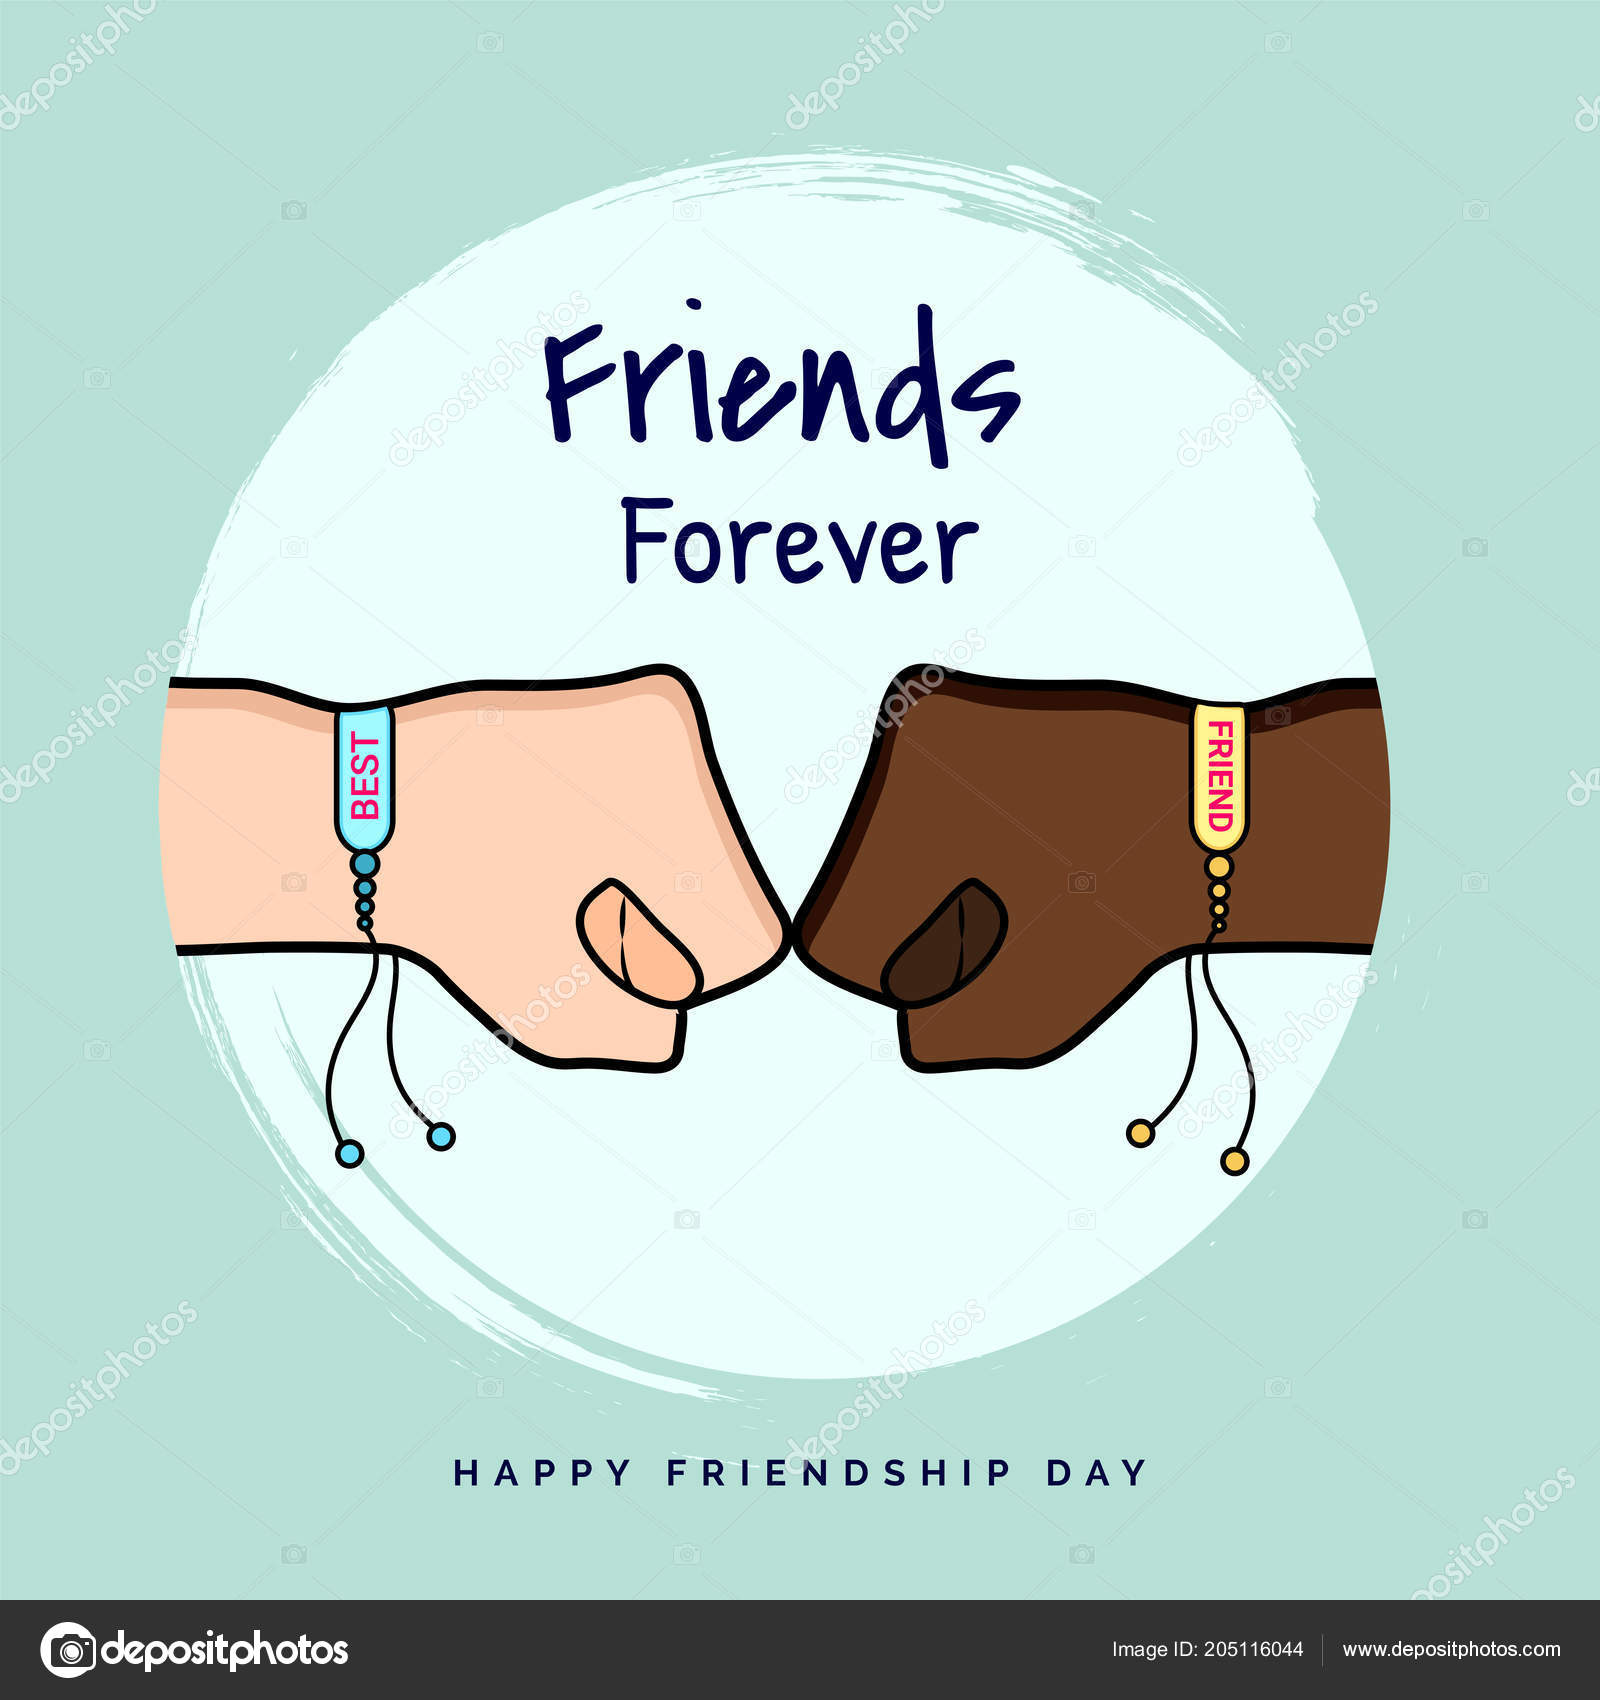 Friends Forever Greeting Card Design Two Fists Punching Each Other